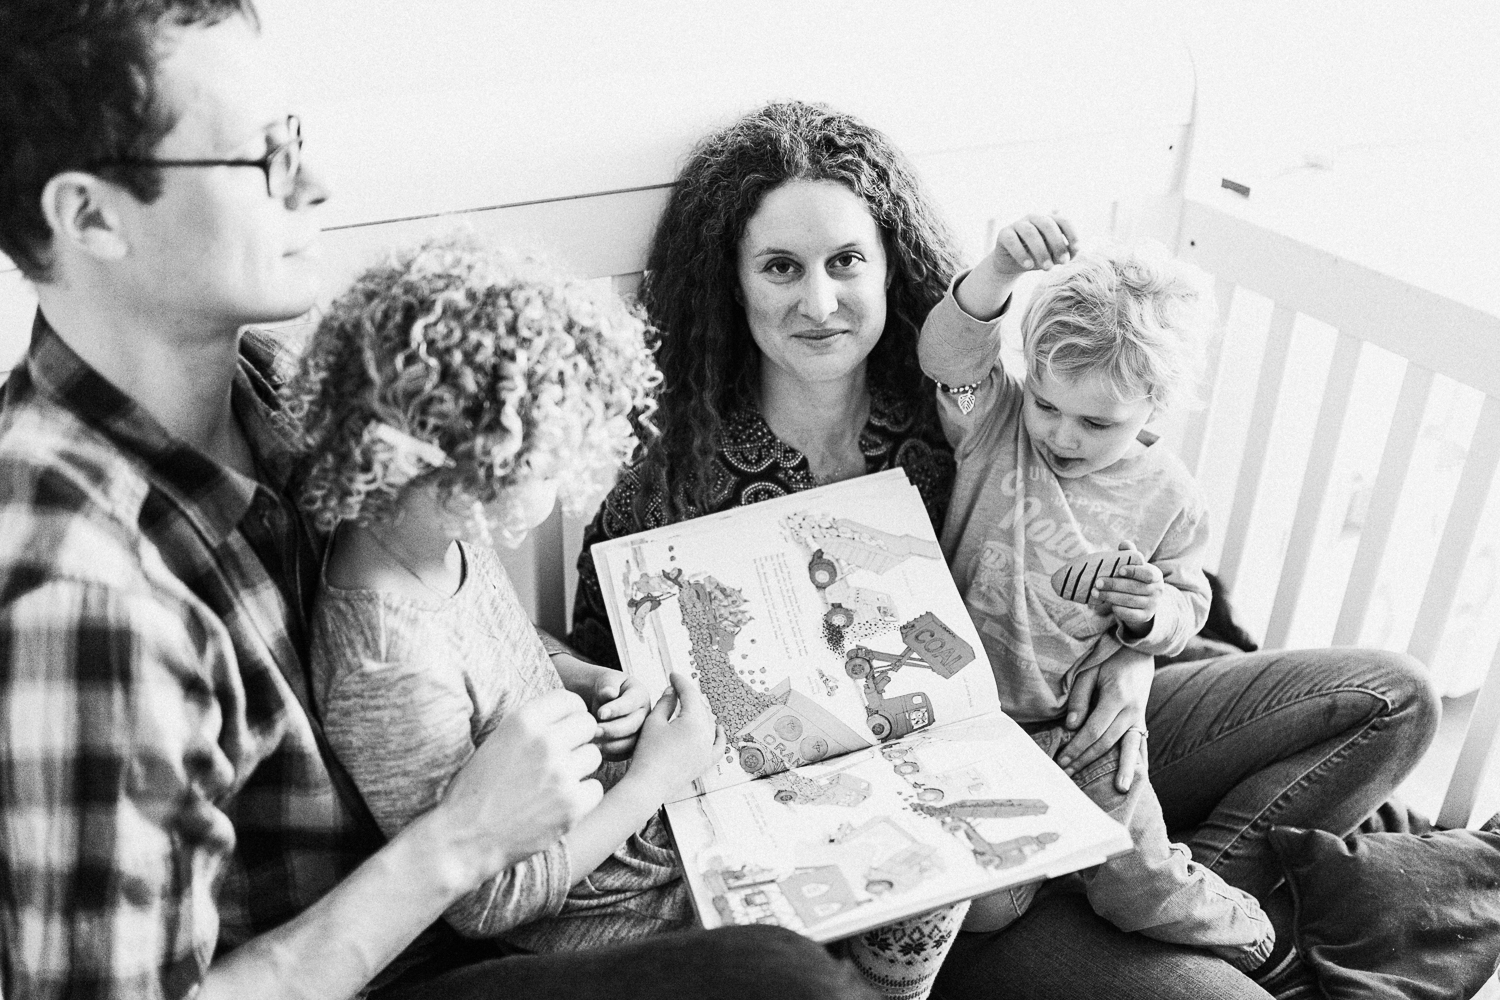 artistic-and-intimate-photos-of-family-at-home-lifestyle-photography-slc-ut